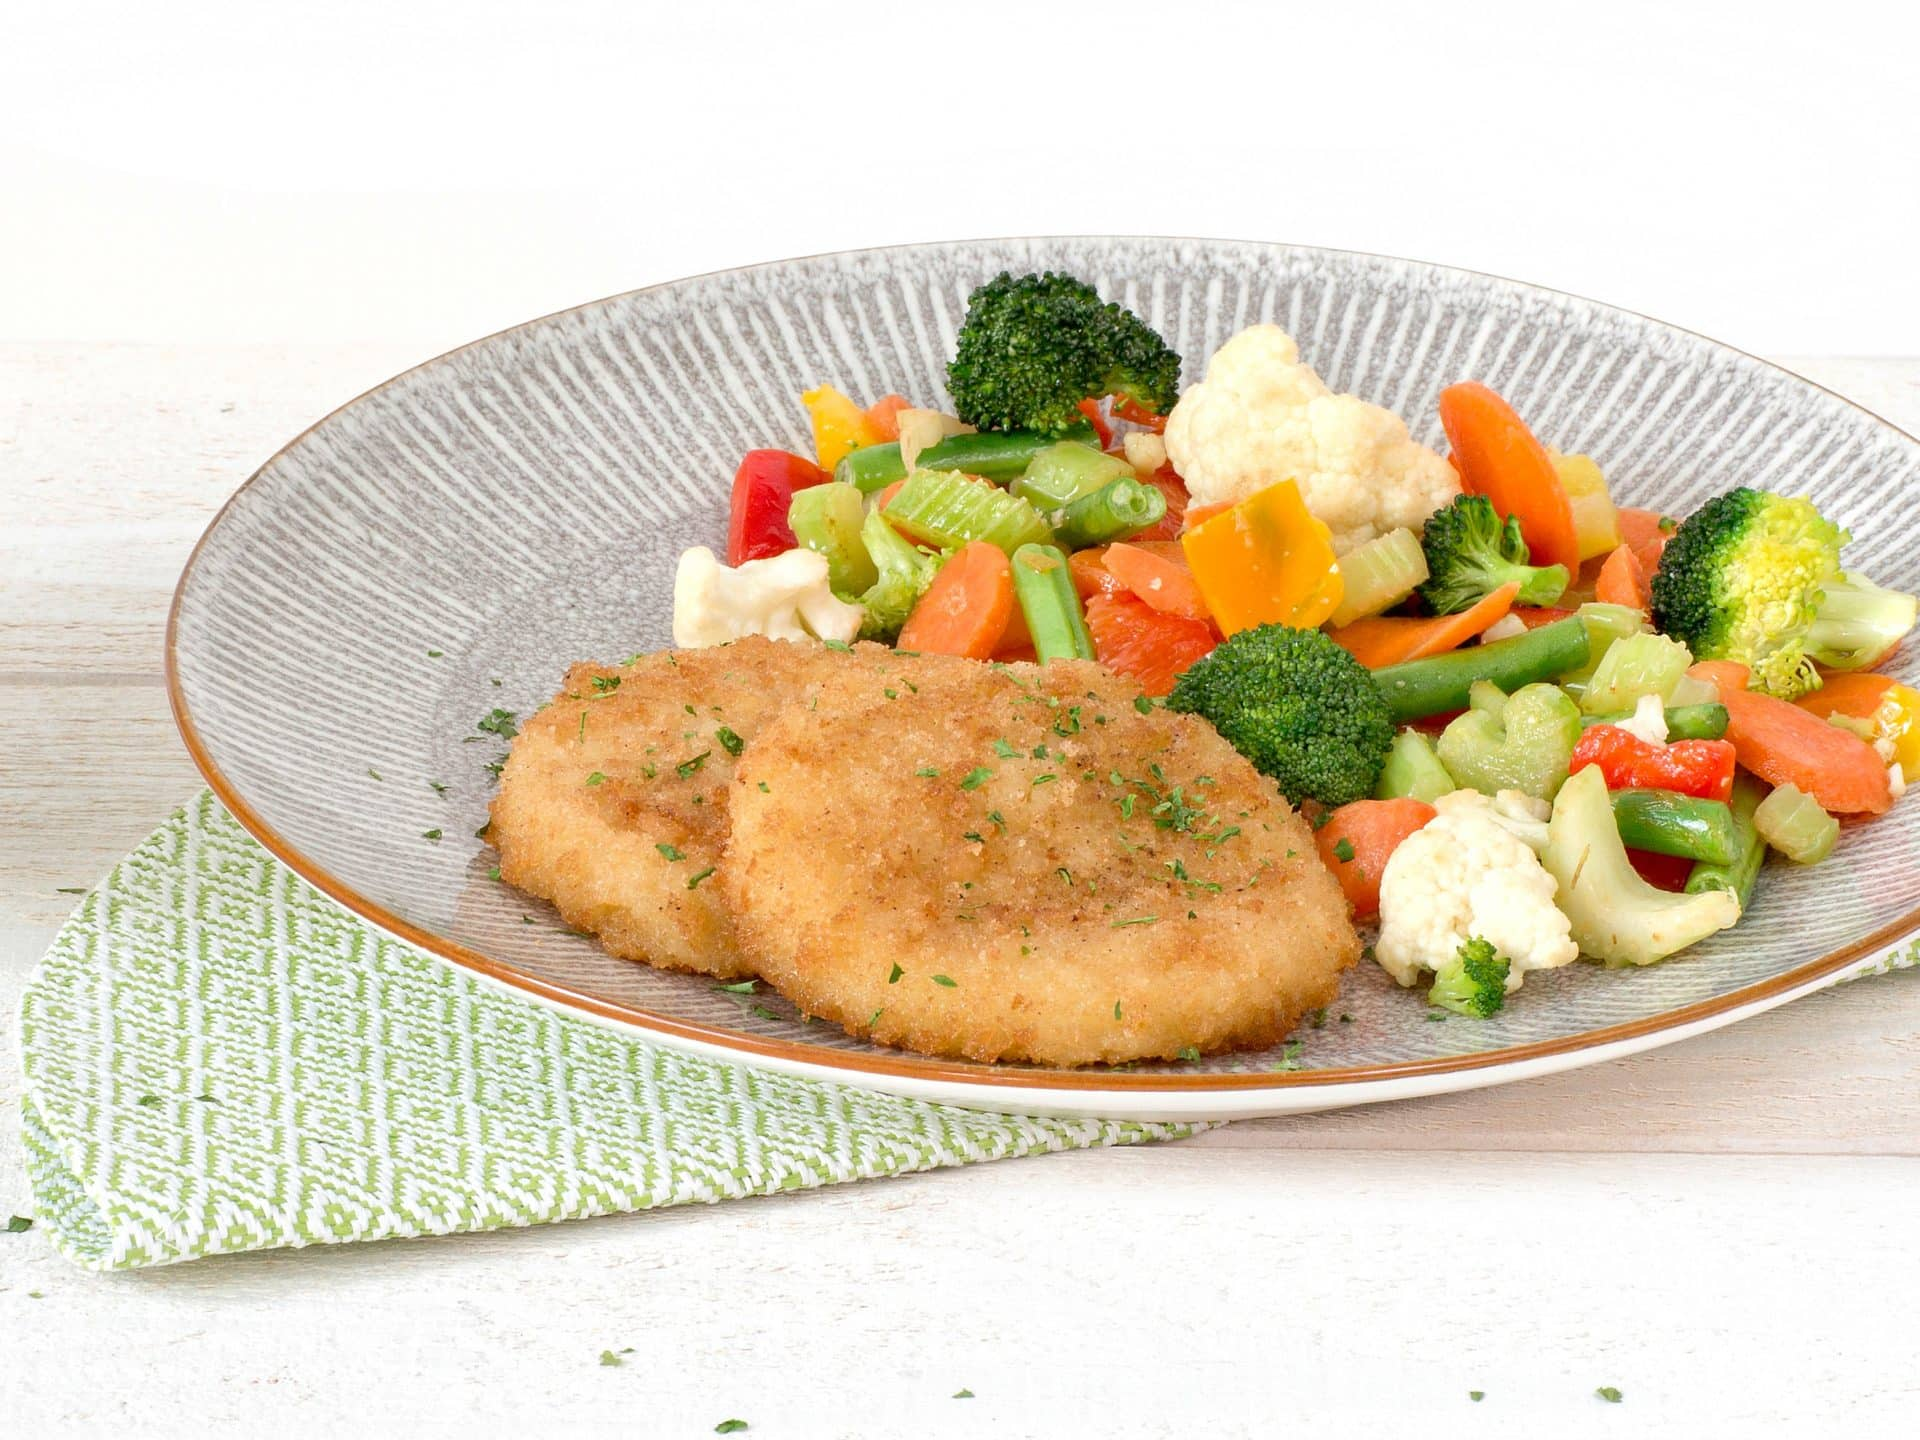 Meat substitute: Vegan Cheezy Schnitzel